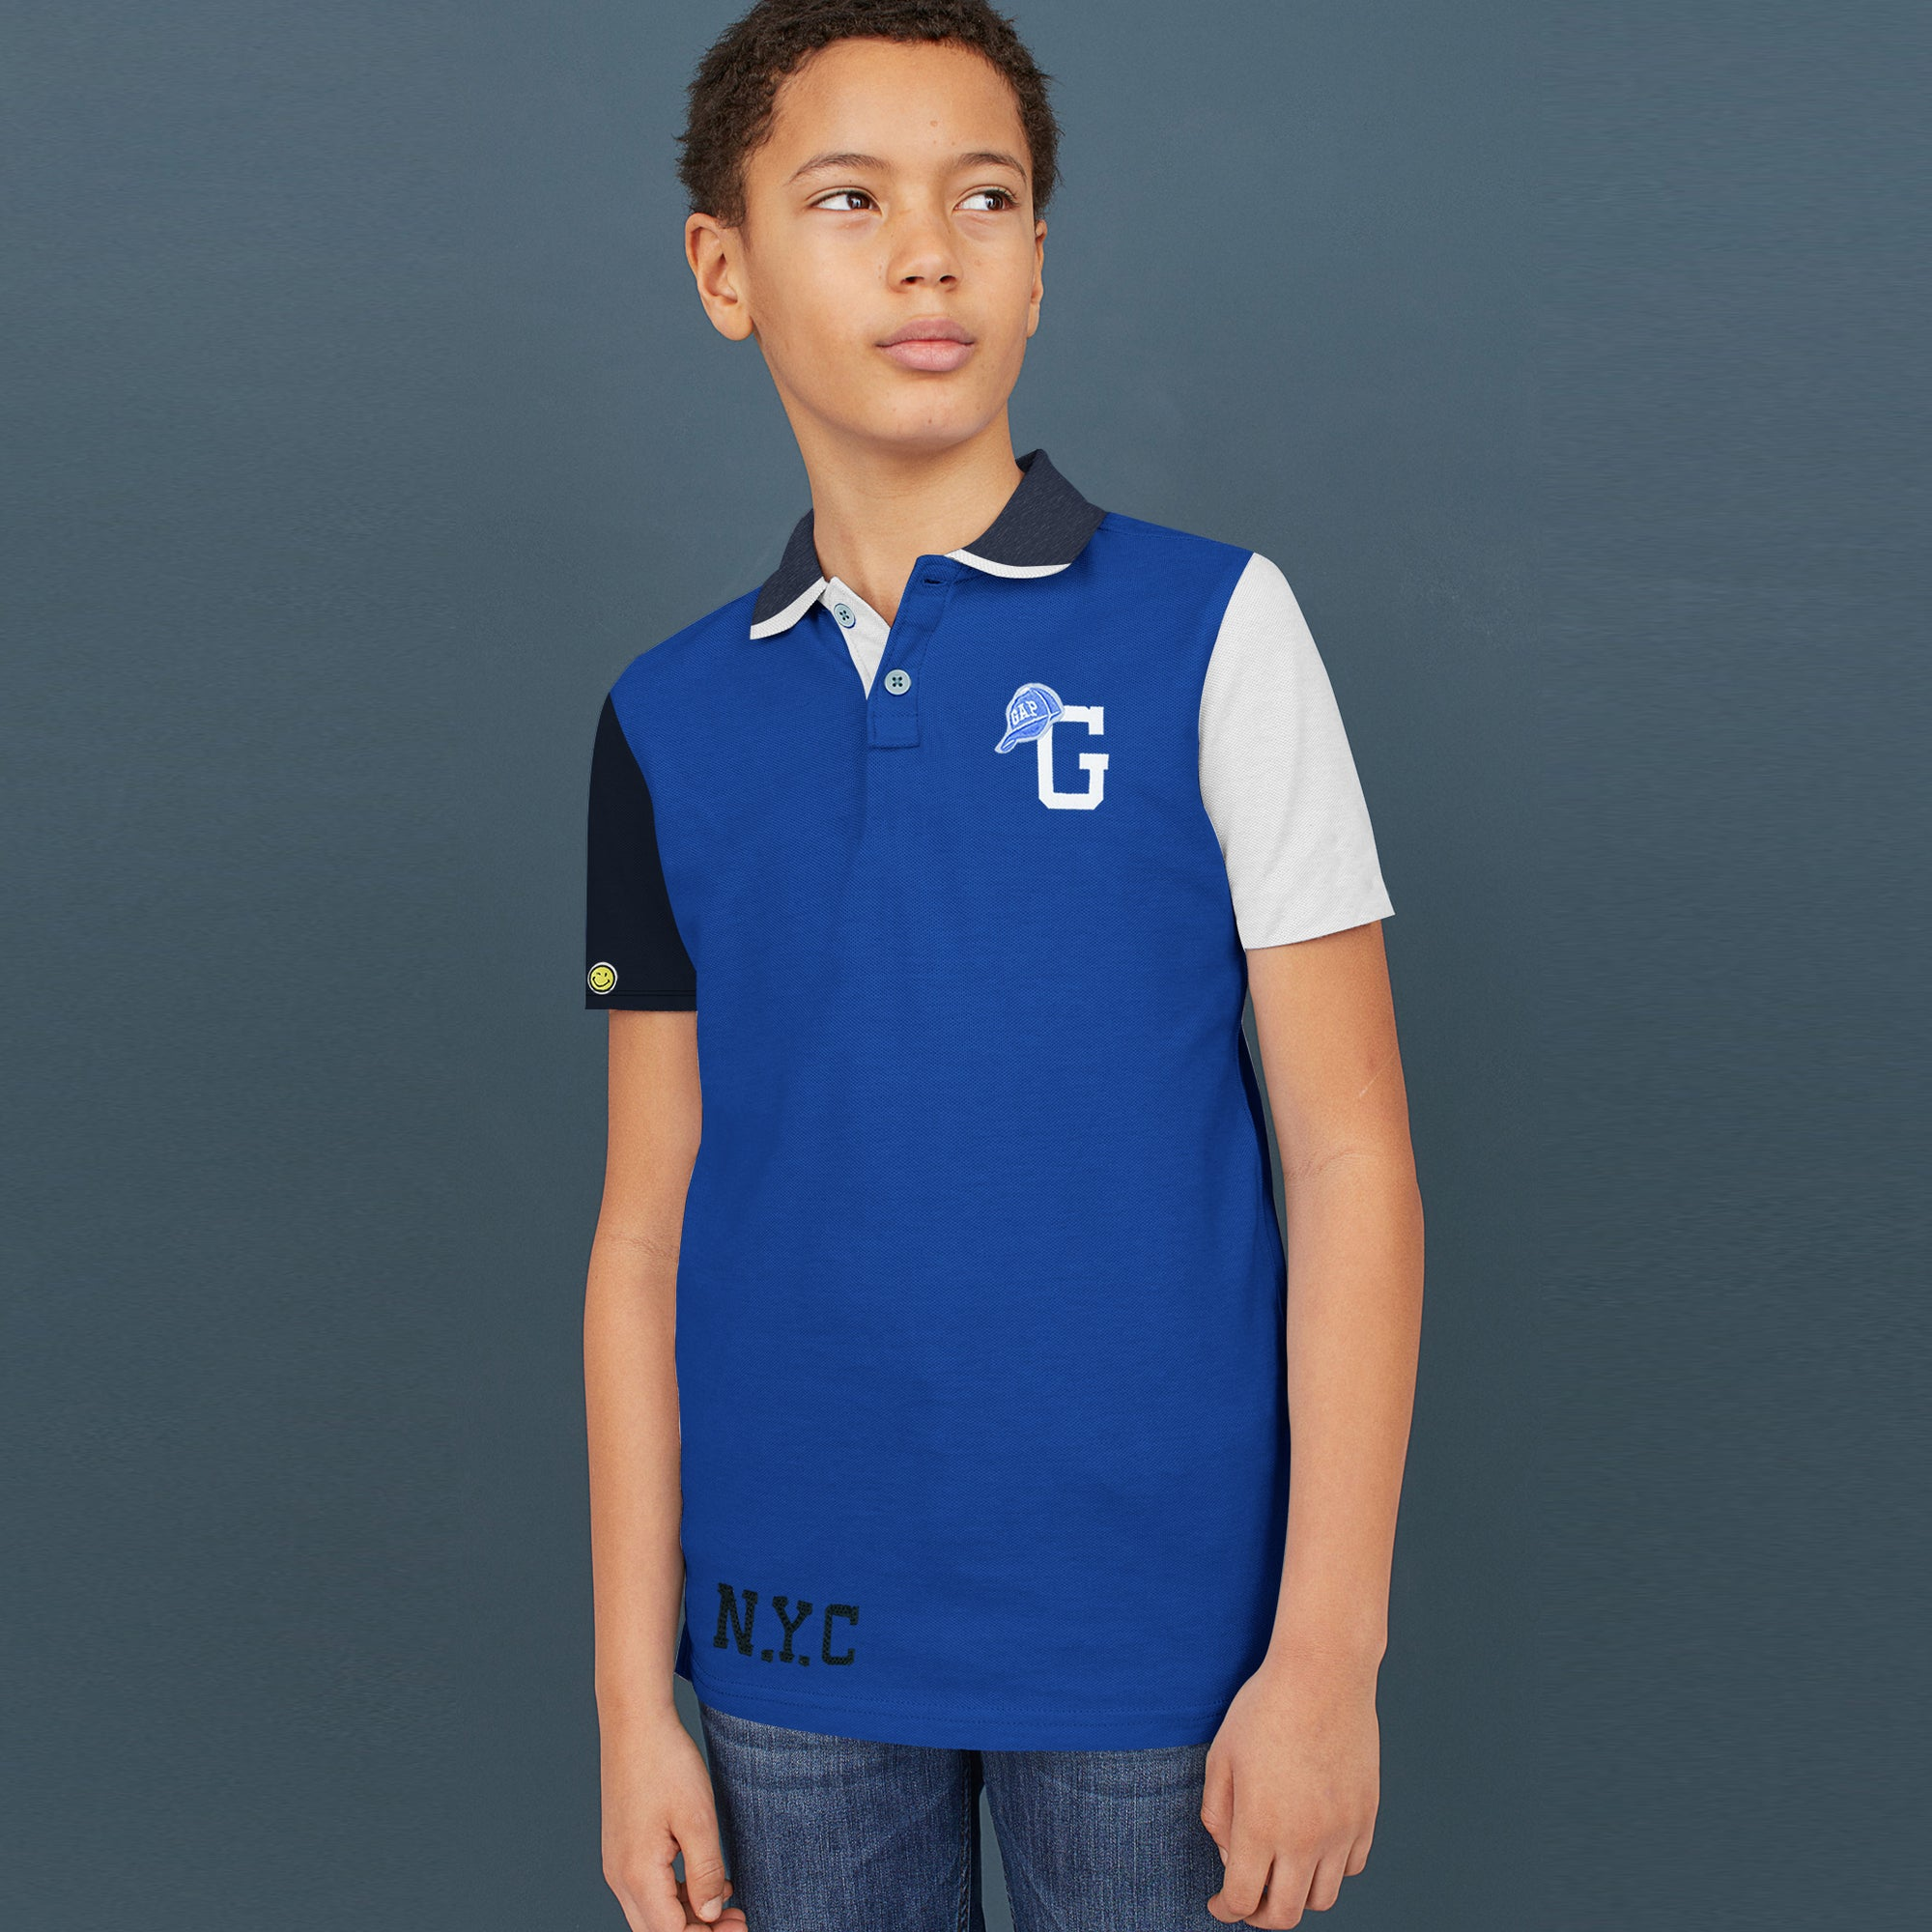 brandsego - GAP Half Sleeve P.Q Polo Shirt For Kids-Blue with Panels-BE8511